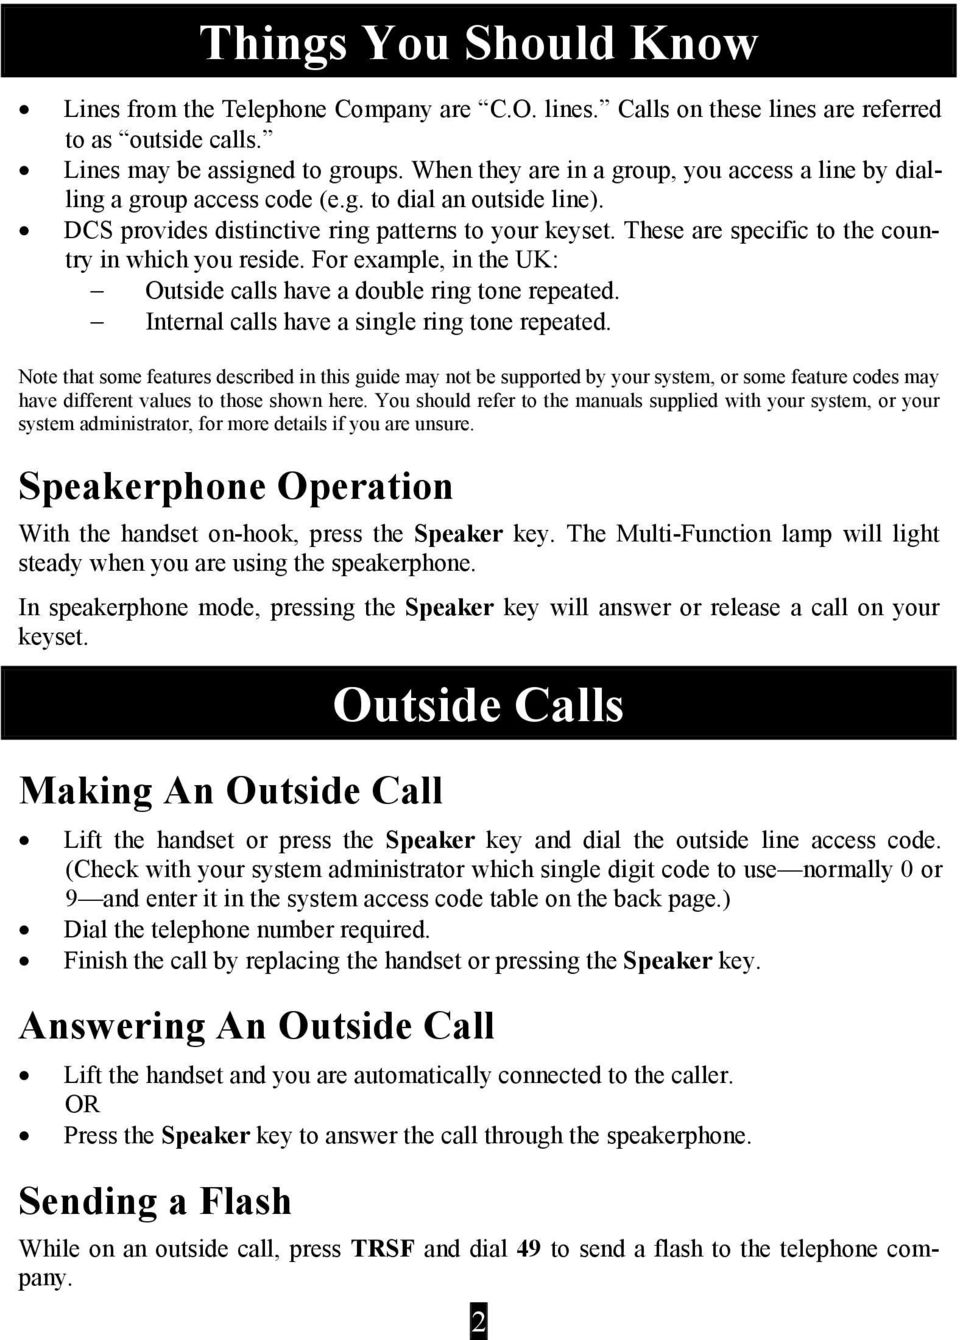 These are specific to the country in which you reside. For example, in the UK: Outside calls have a double ring tone repeated. Internal calls have a single ring tone repeated.